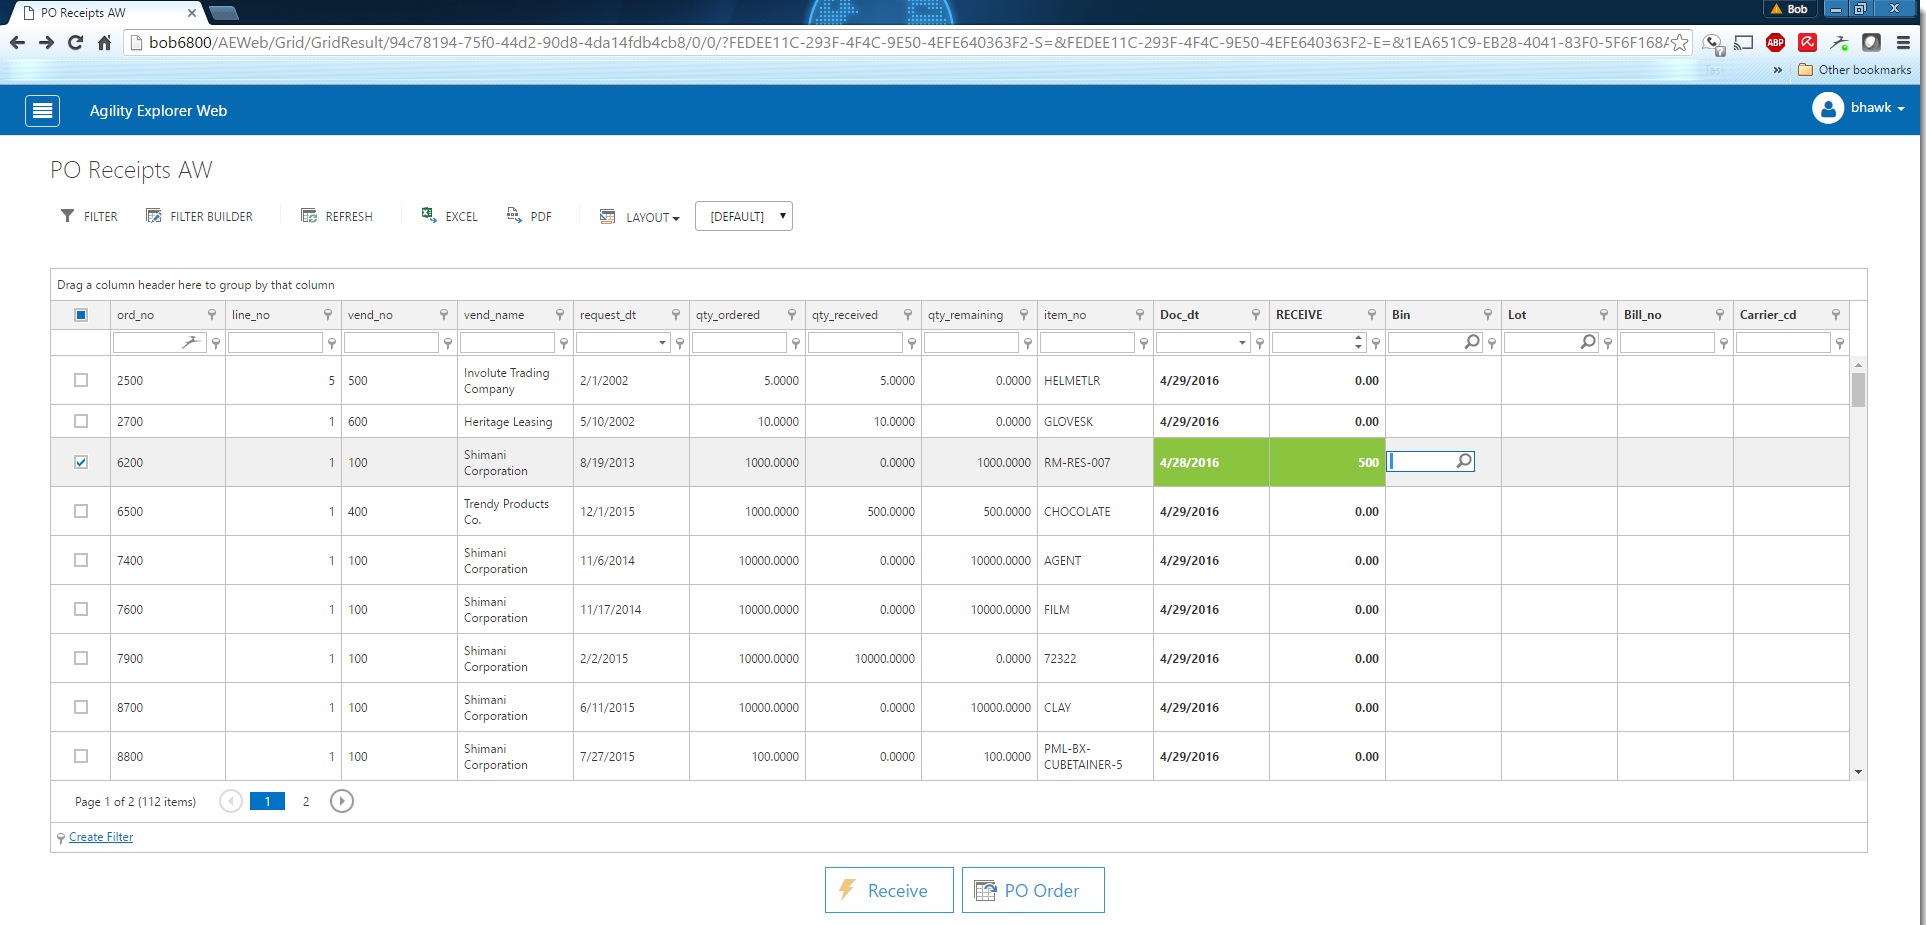 See the General Features of Agility Web Explorer